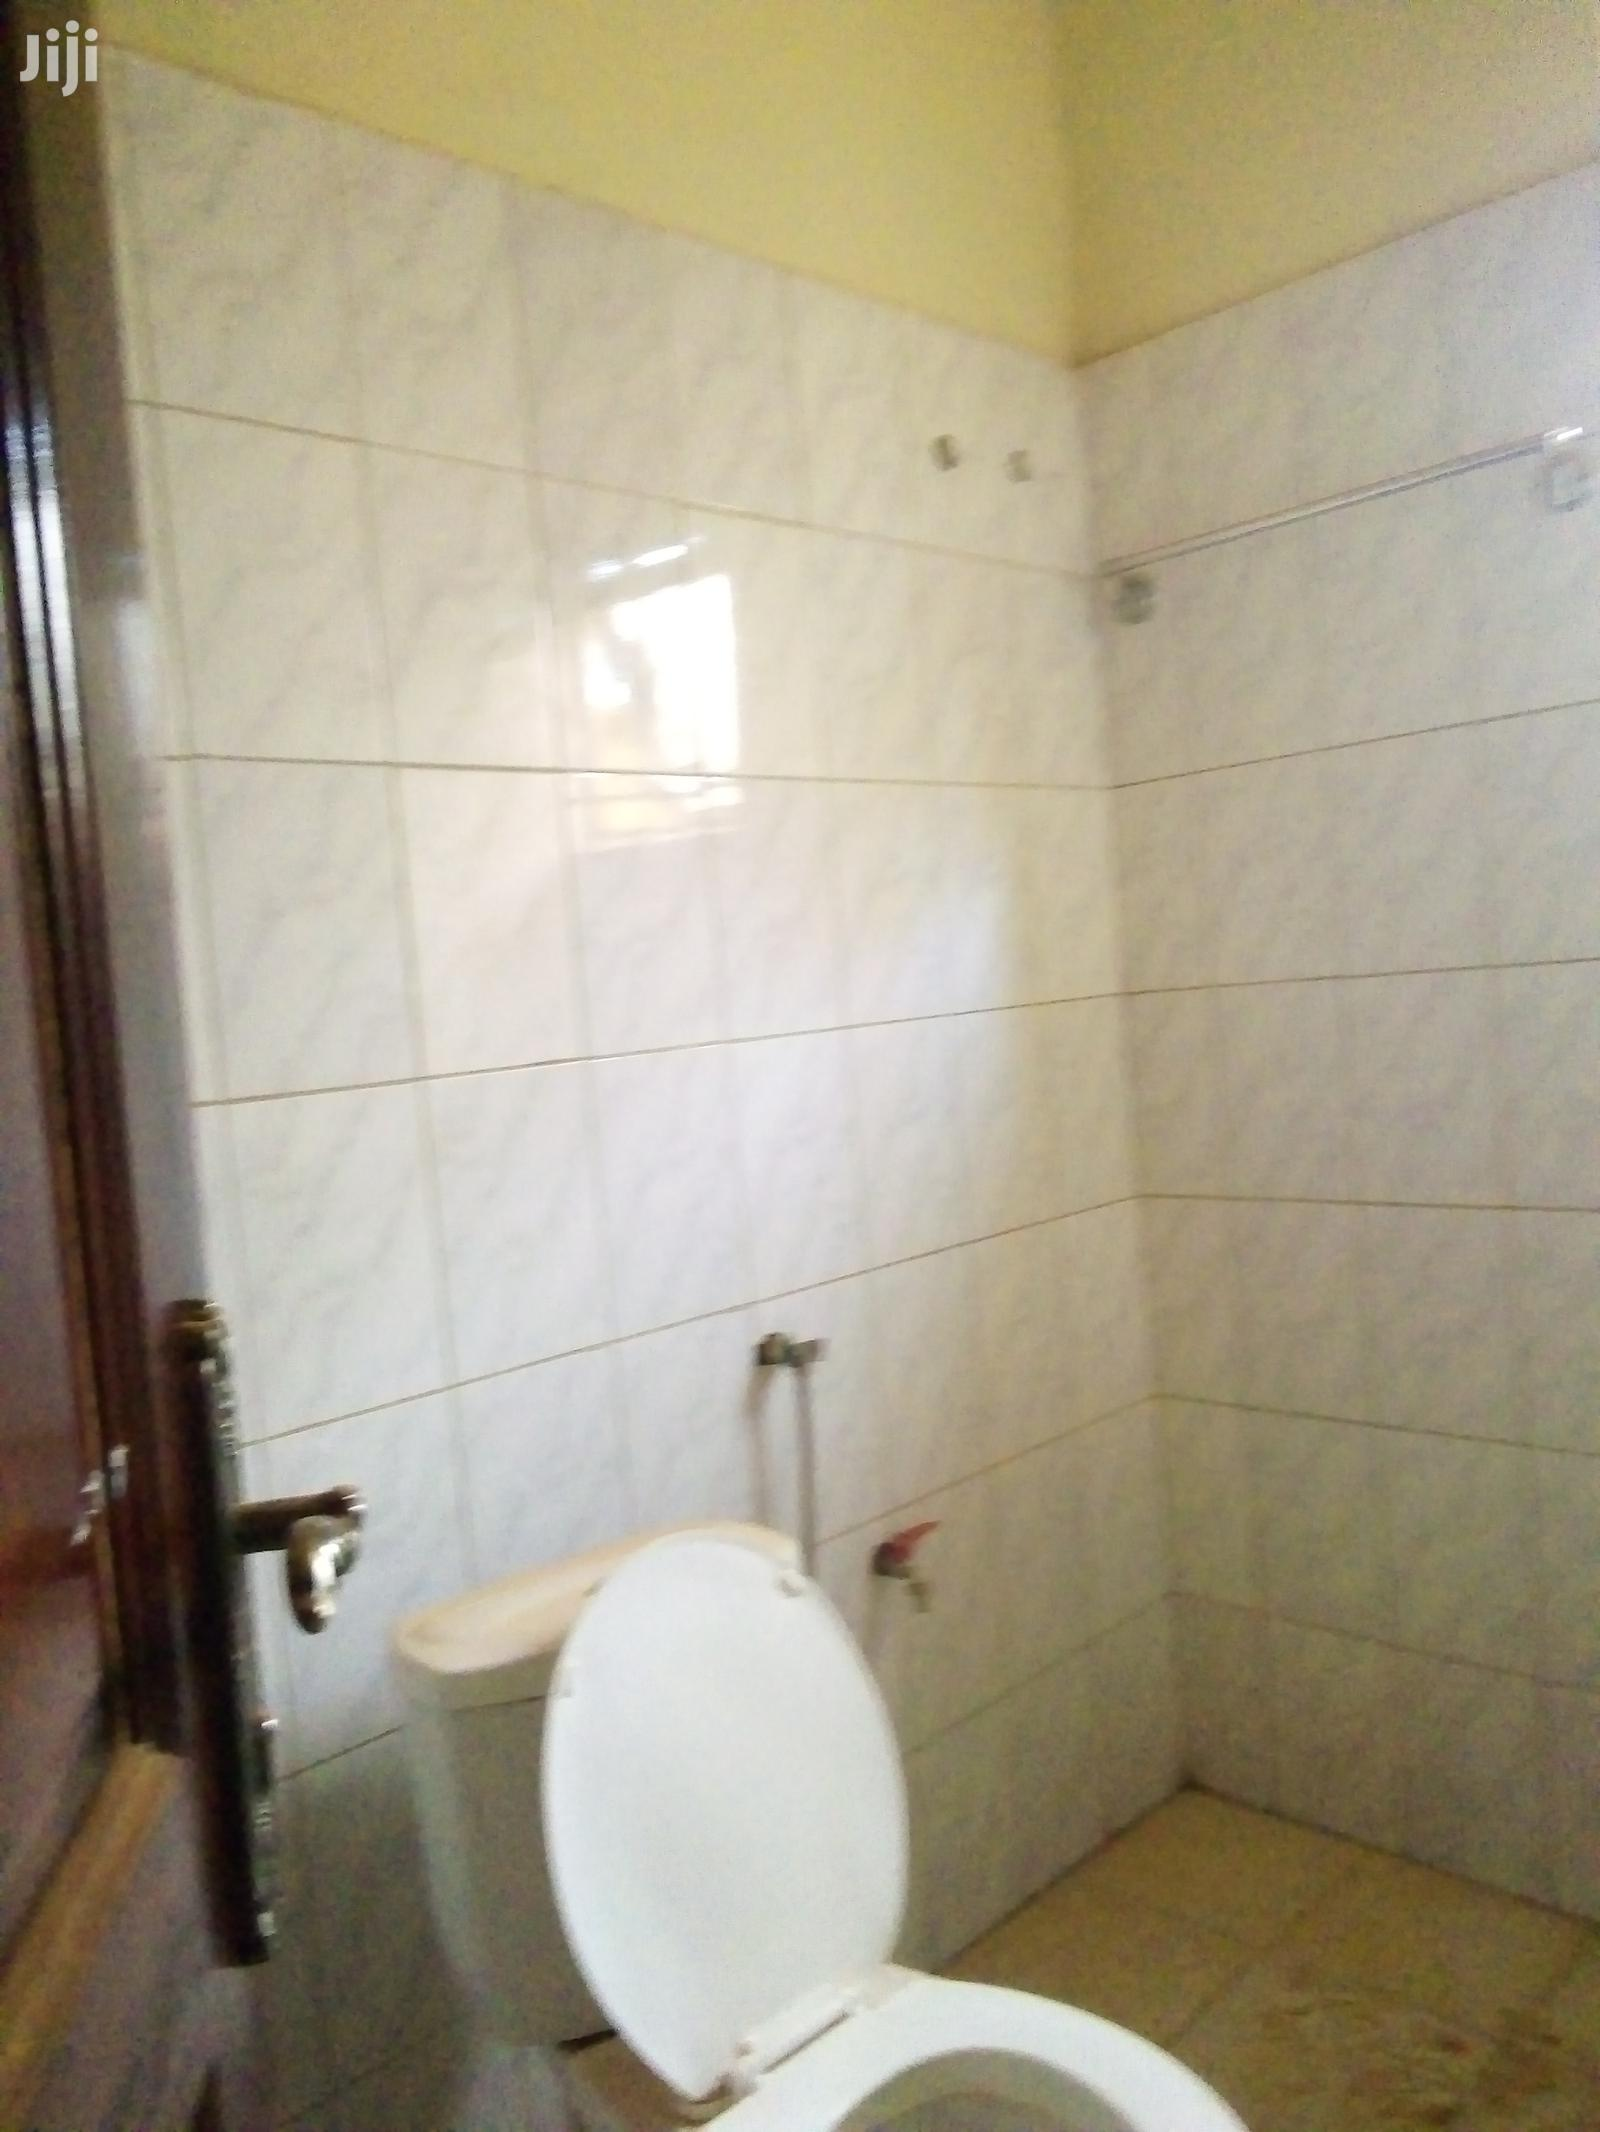 Najjera Double For Rent I | Houses & Apartments For Rent for sale in Kampala, Central Region, Uganda